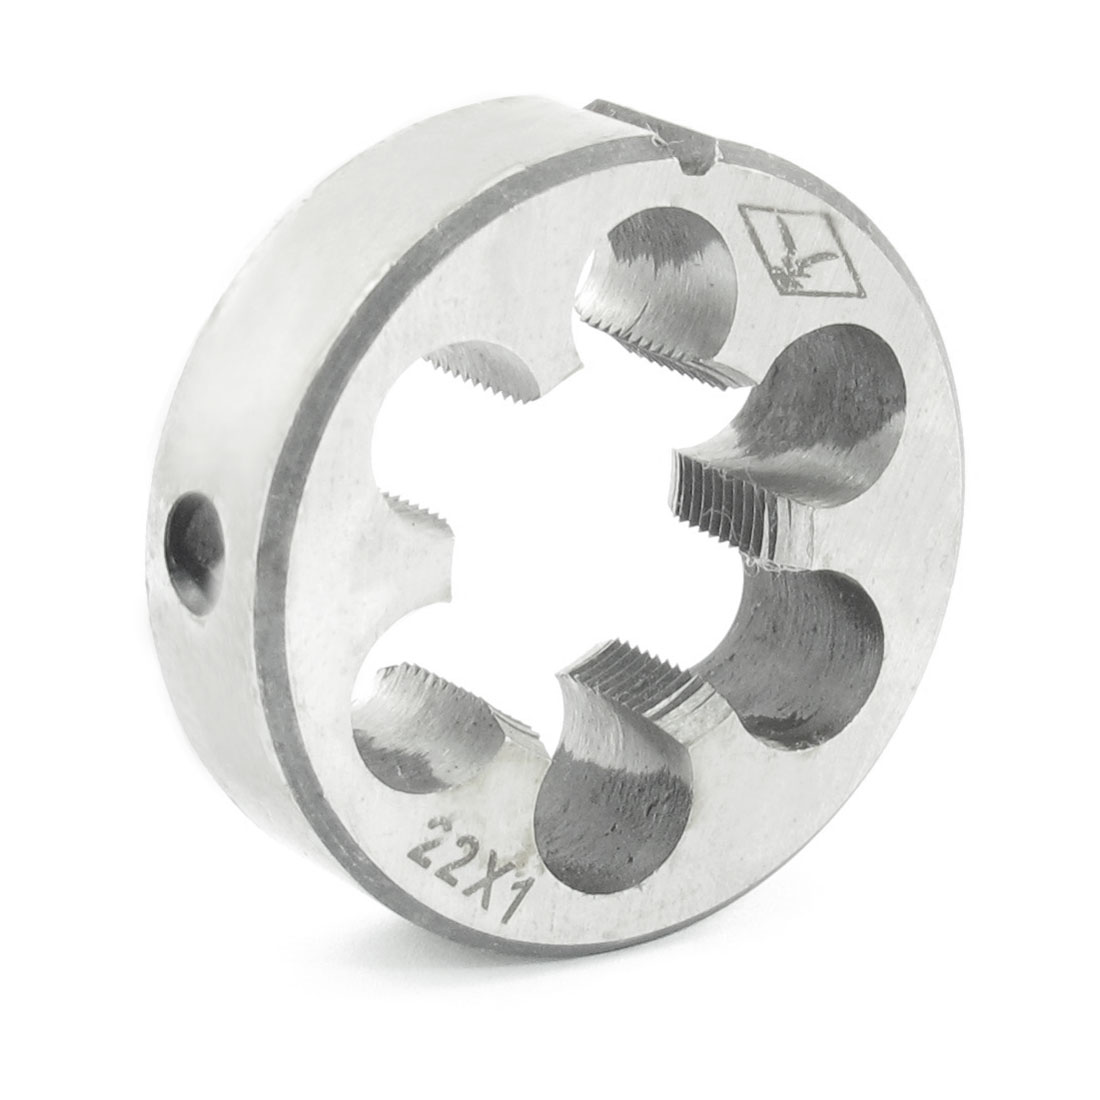 HSS M22 x 1 Thread Metric Round Shape Die 14mm Thickness